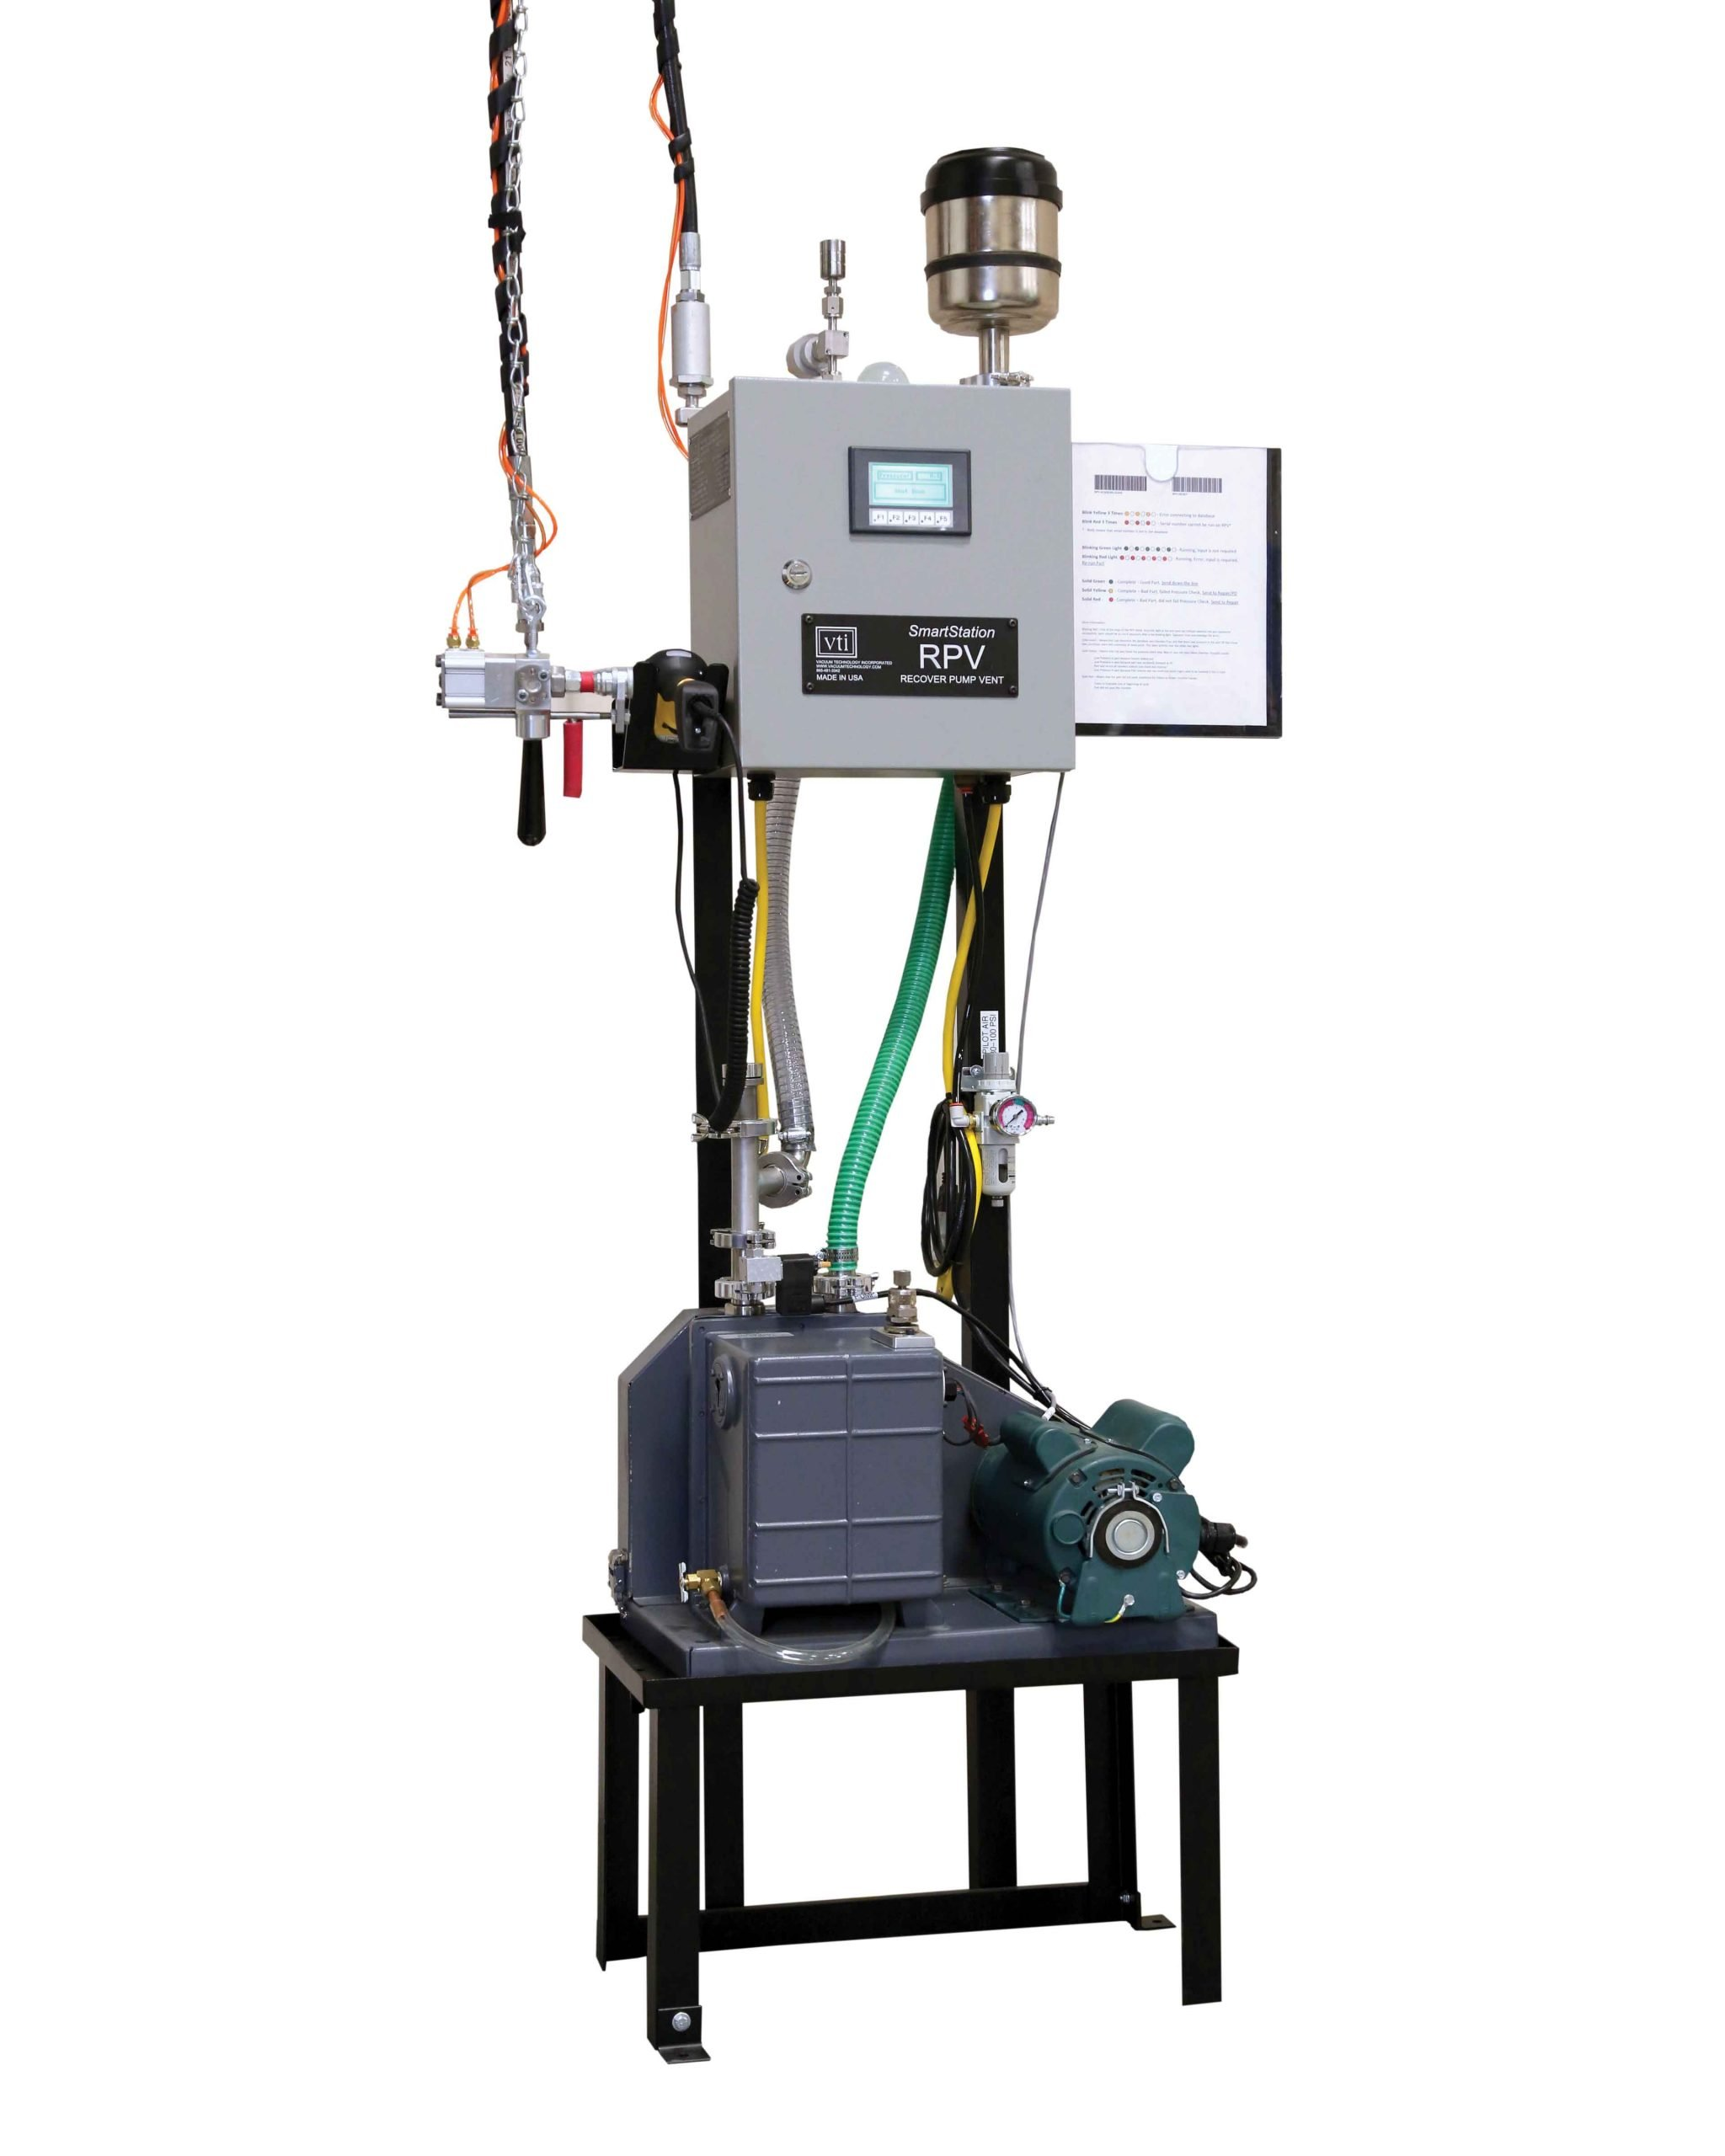 VTI's Recovery, Pump, and Vent (RPV) SmartStation Unit for A-Coil and Condensing Unit Manufacturing